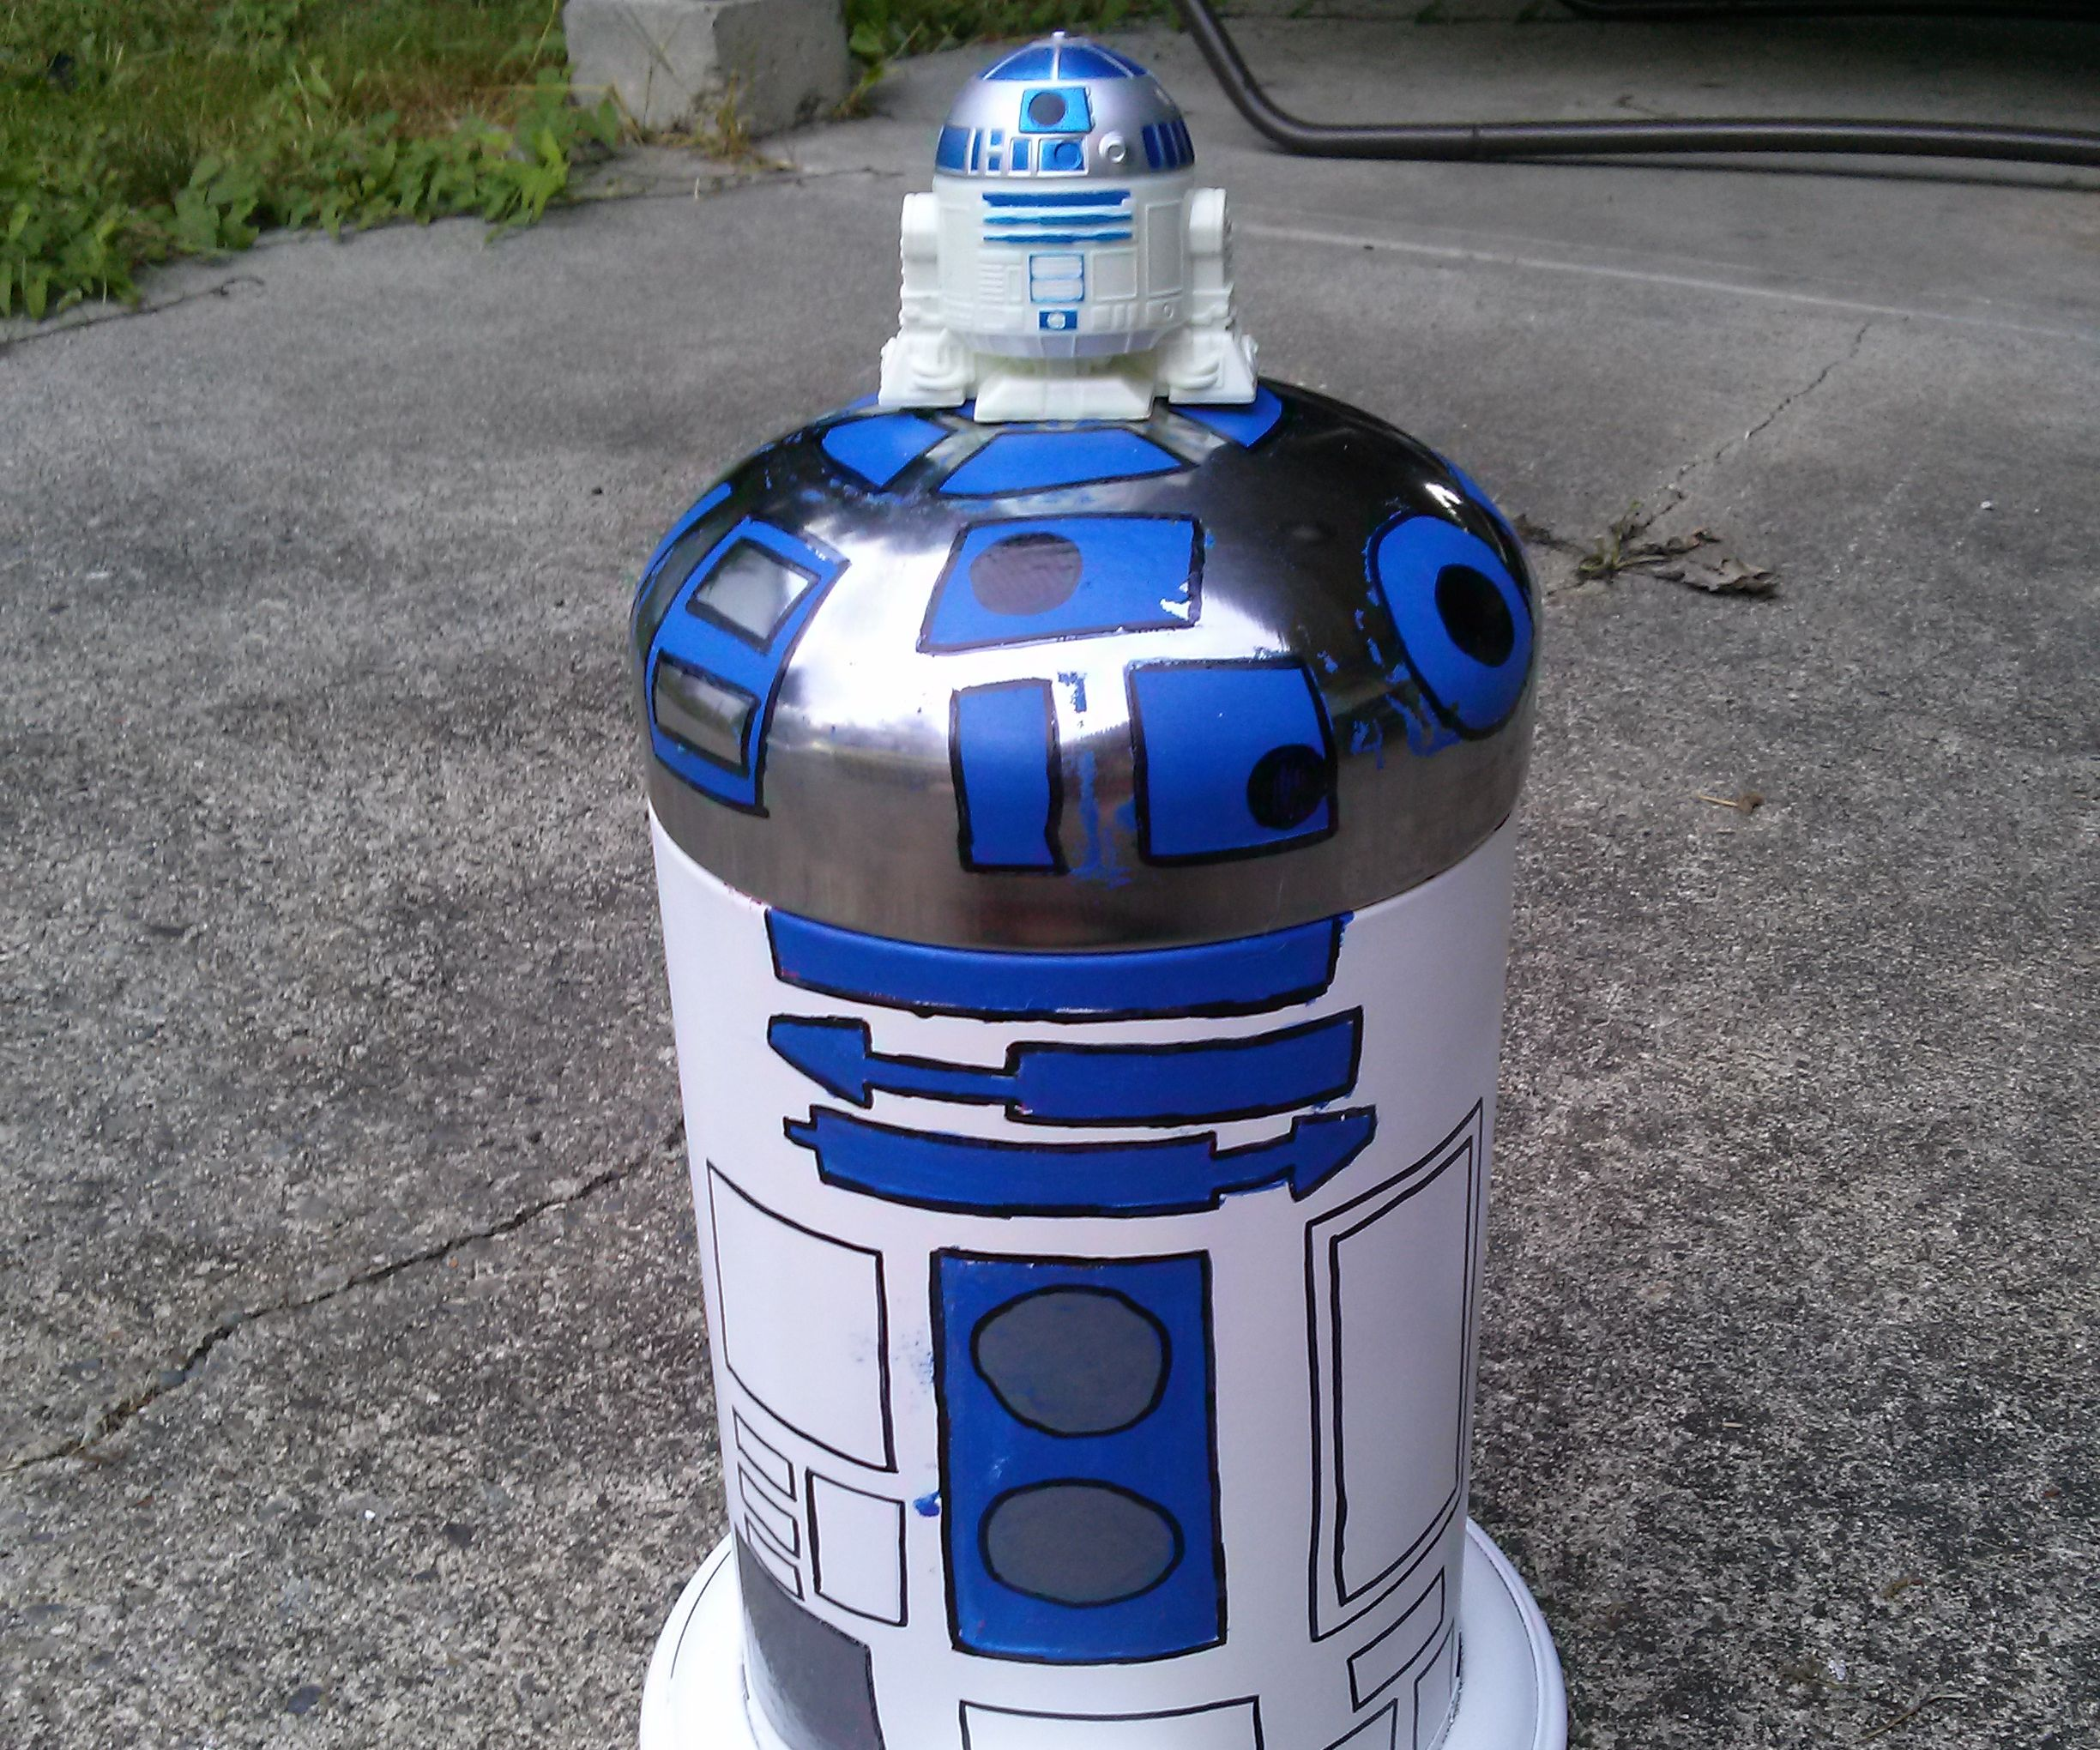 R2D2 Garbage Can